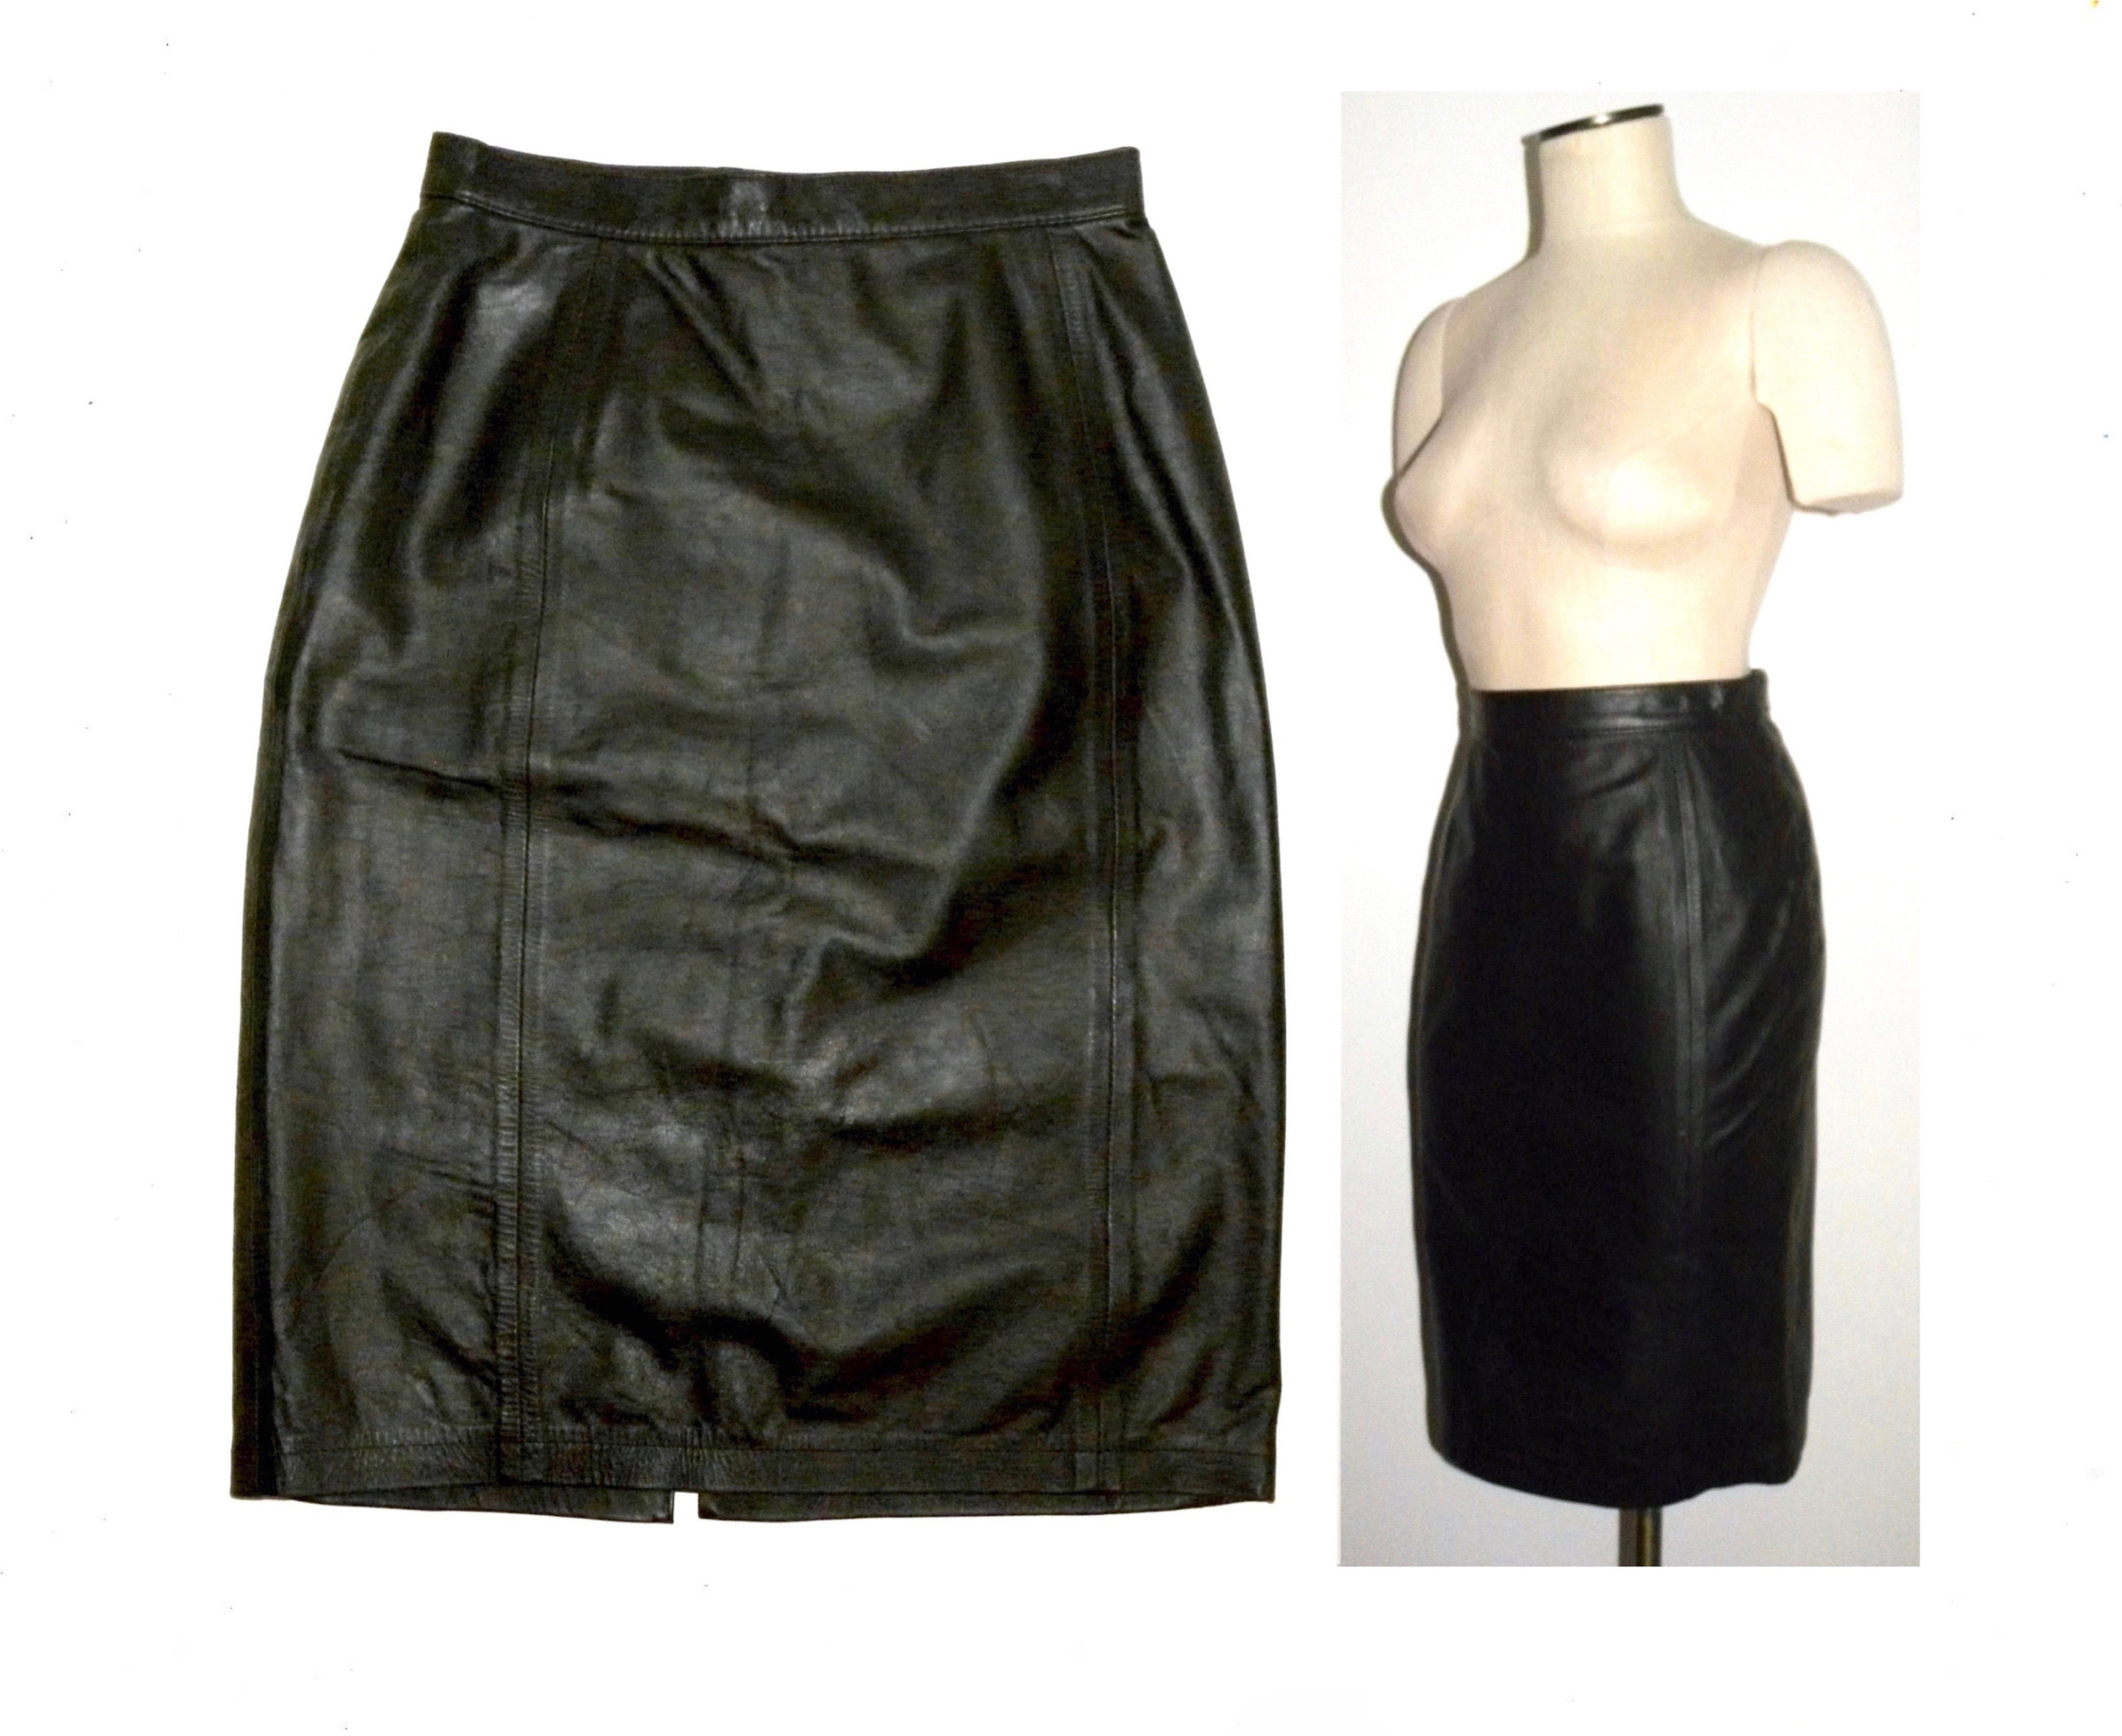 165ae7a11 1980s 80s Black Leather Pencil skirt / Wiggle Skirt Tight Fit | Etsy